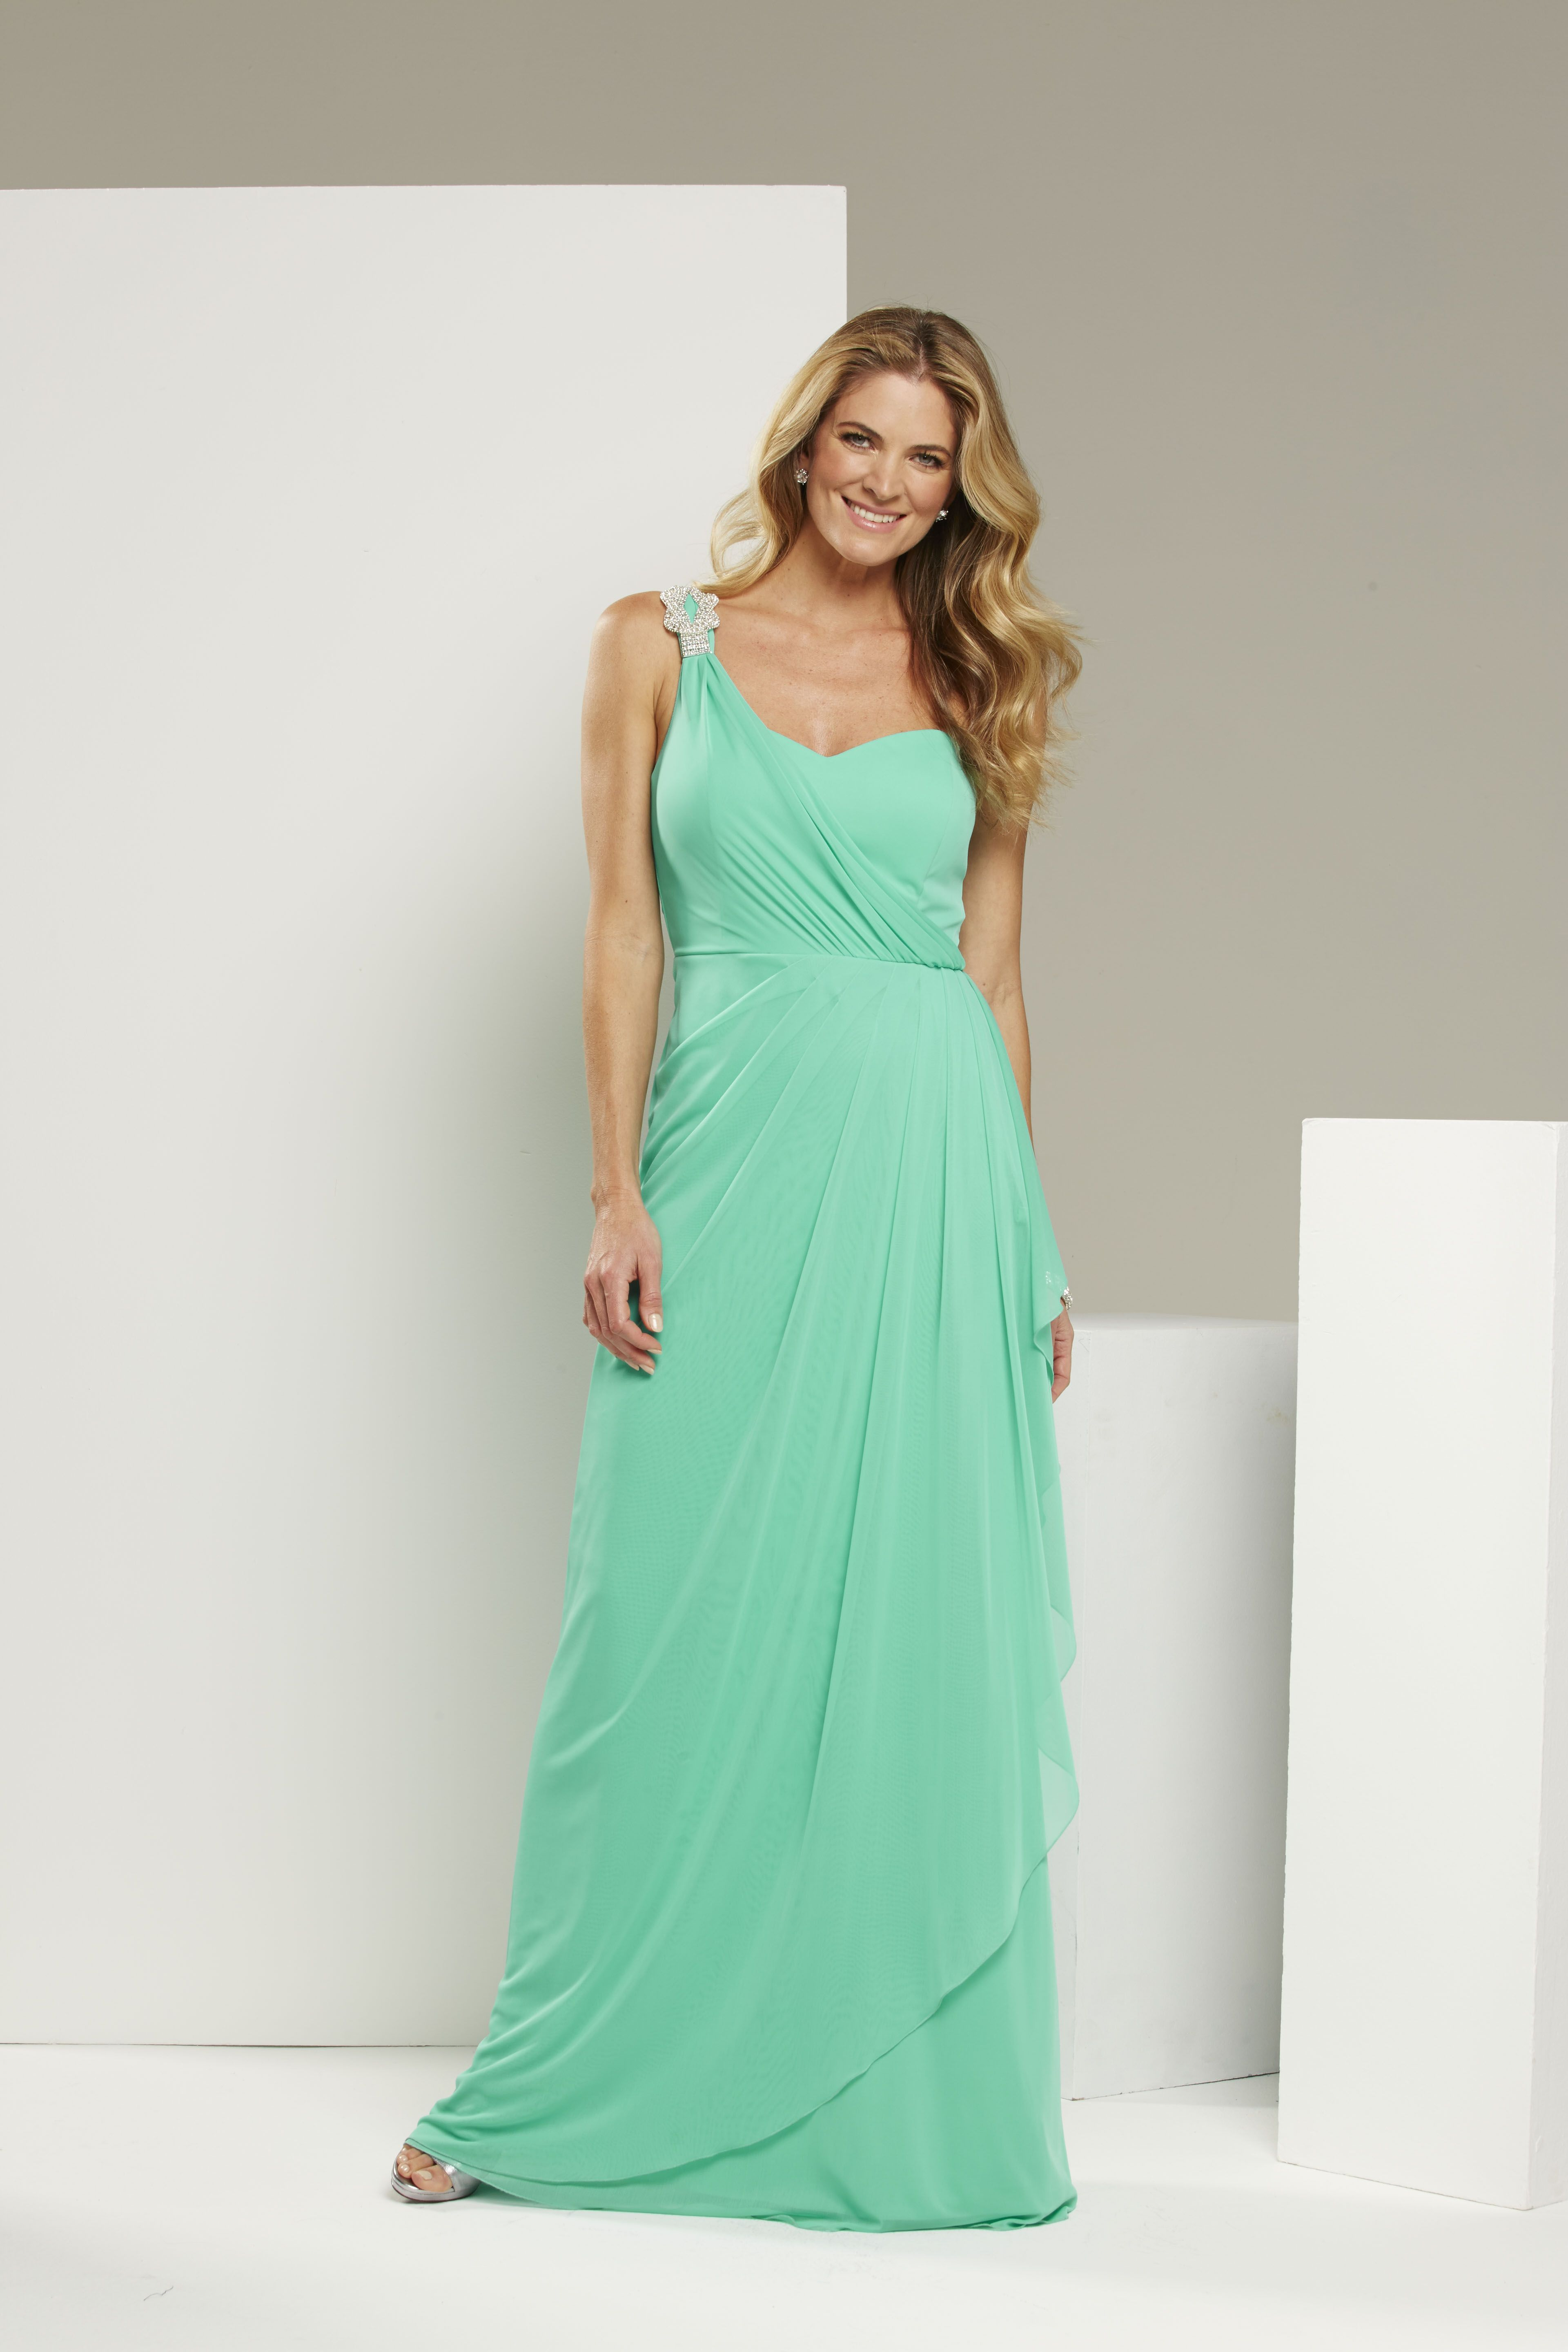 Mr k bridesmaid dress style kb5052 mr k ongoing bridesmaids mr k bridesmaid dress style kb5052 ombrellifo Images